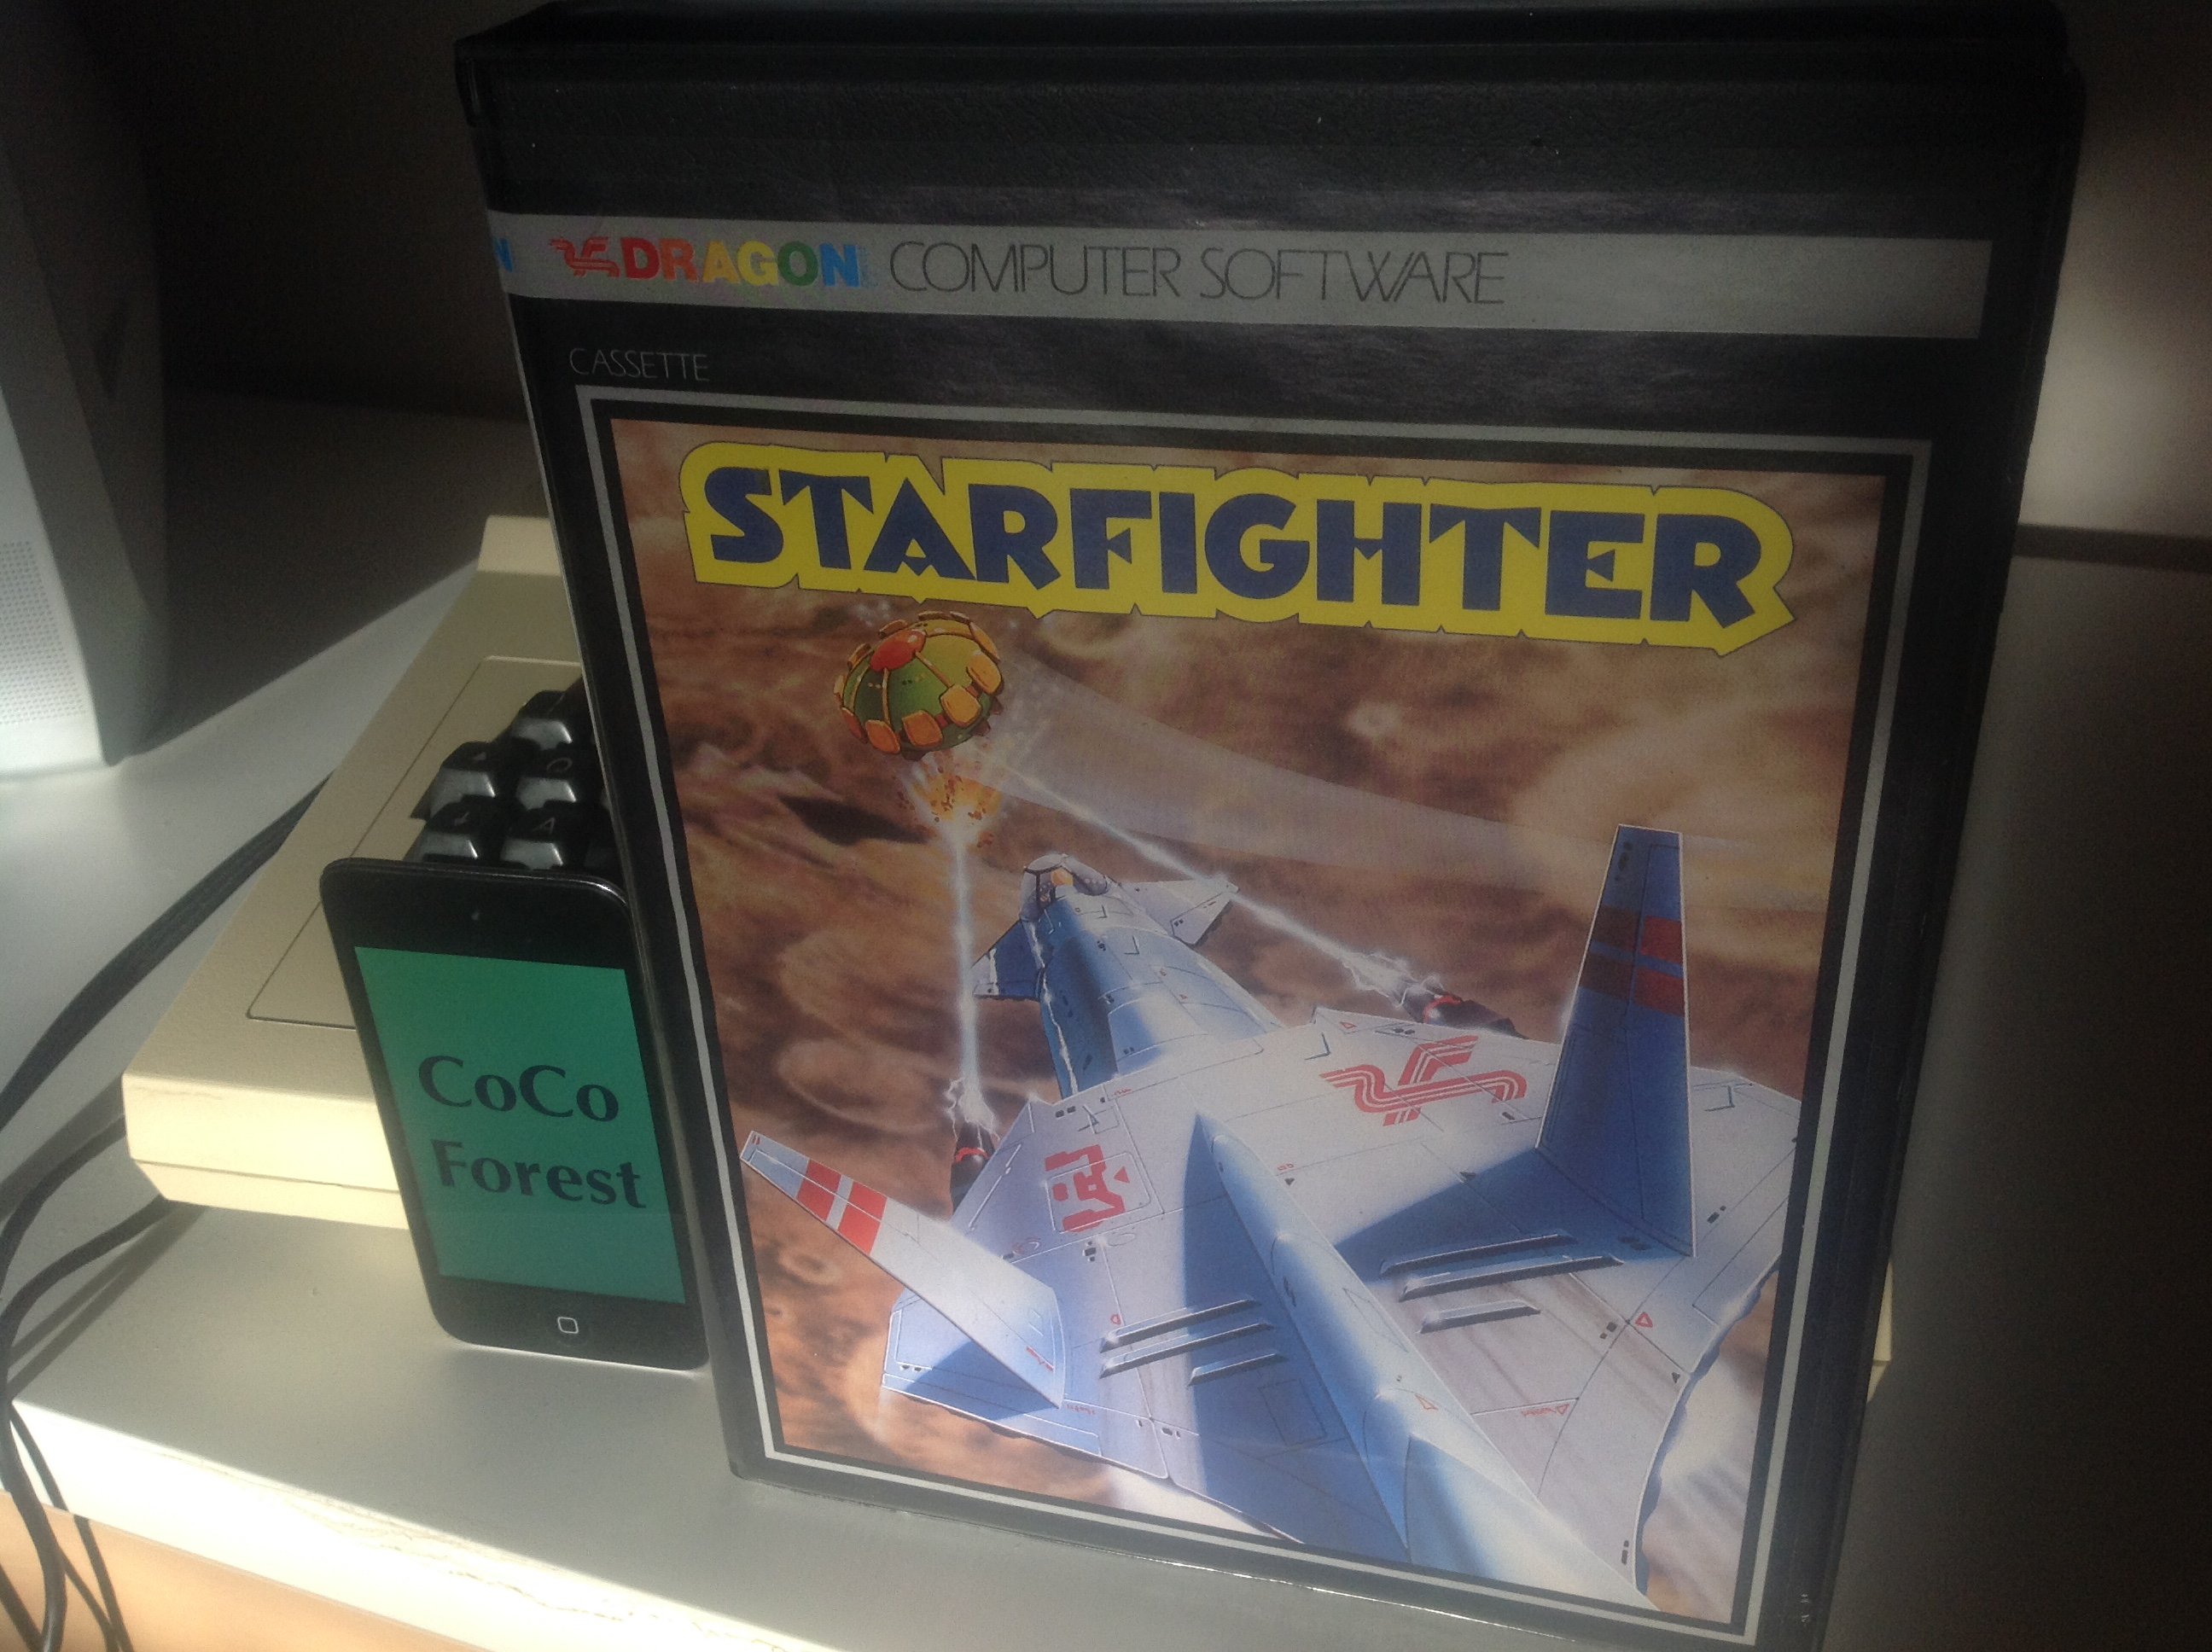 CoCoForest: Starfighter (Dragon 32/64) 1,325 points on 2018-01-06 08:42:36